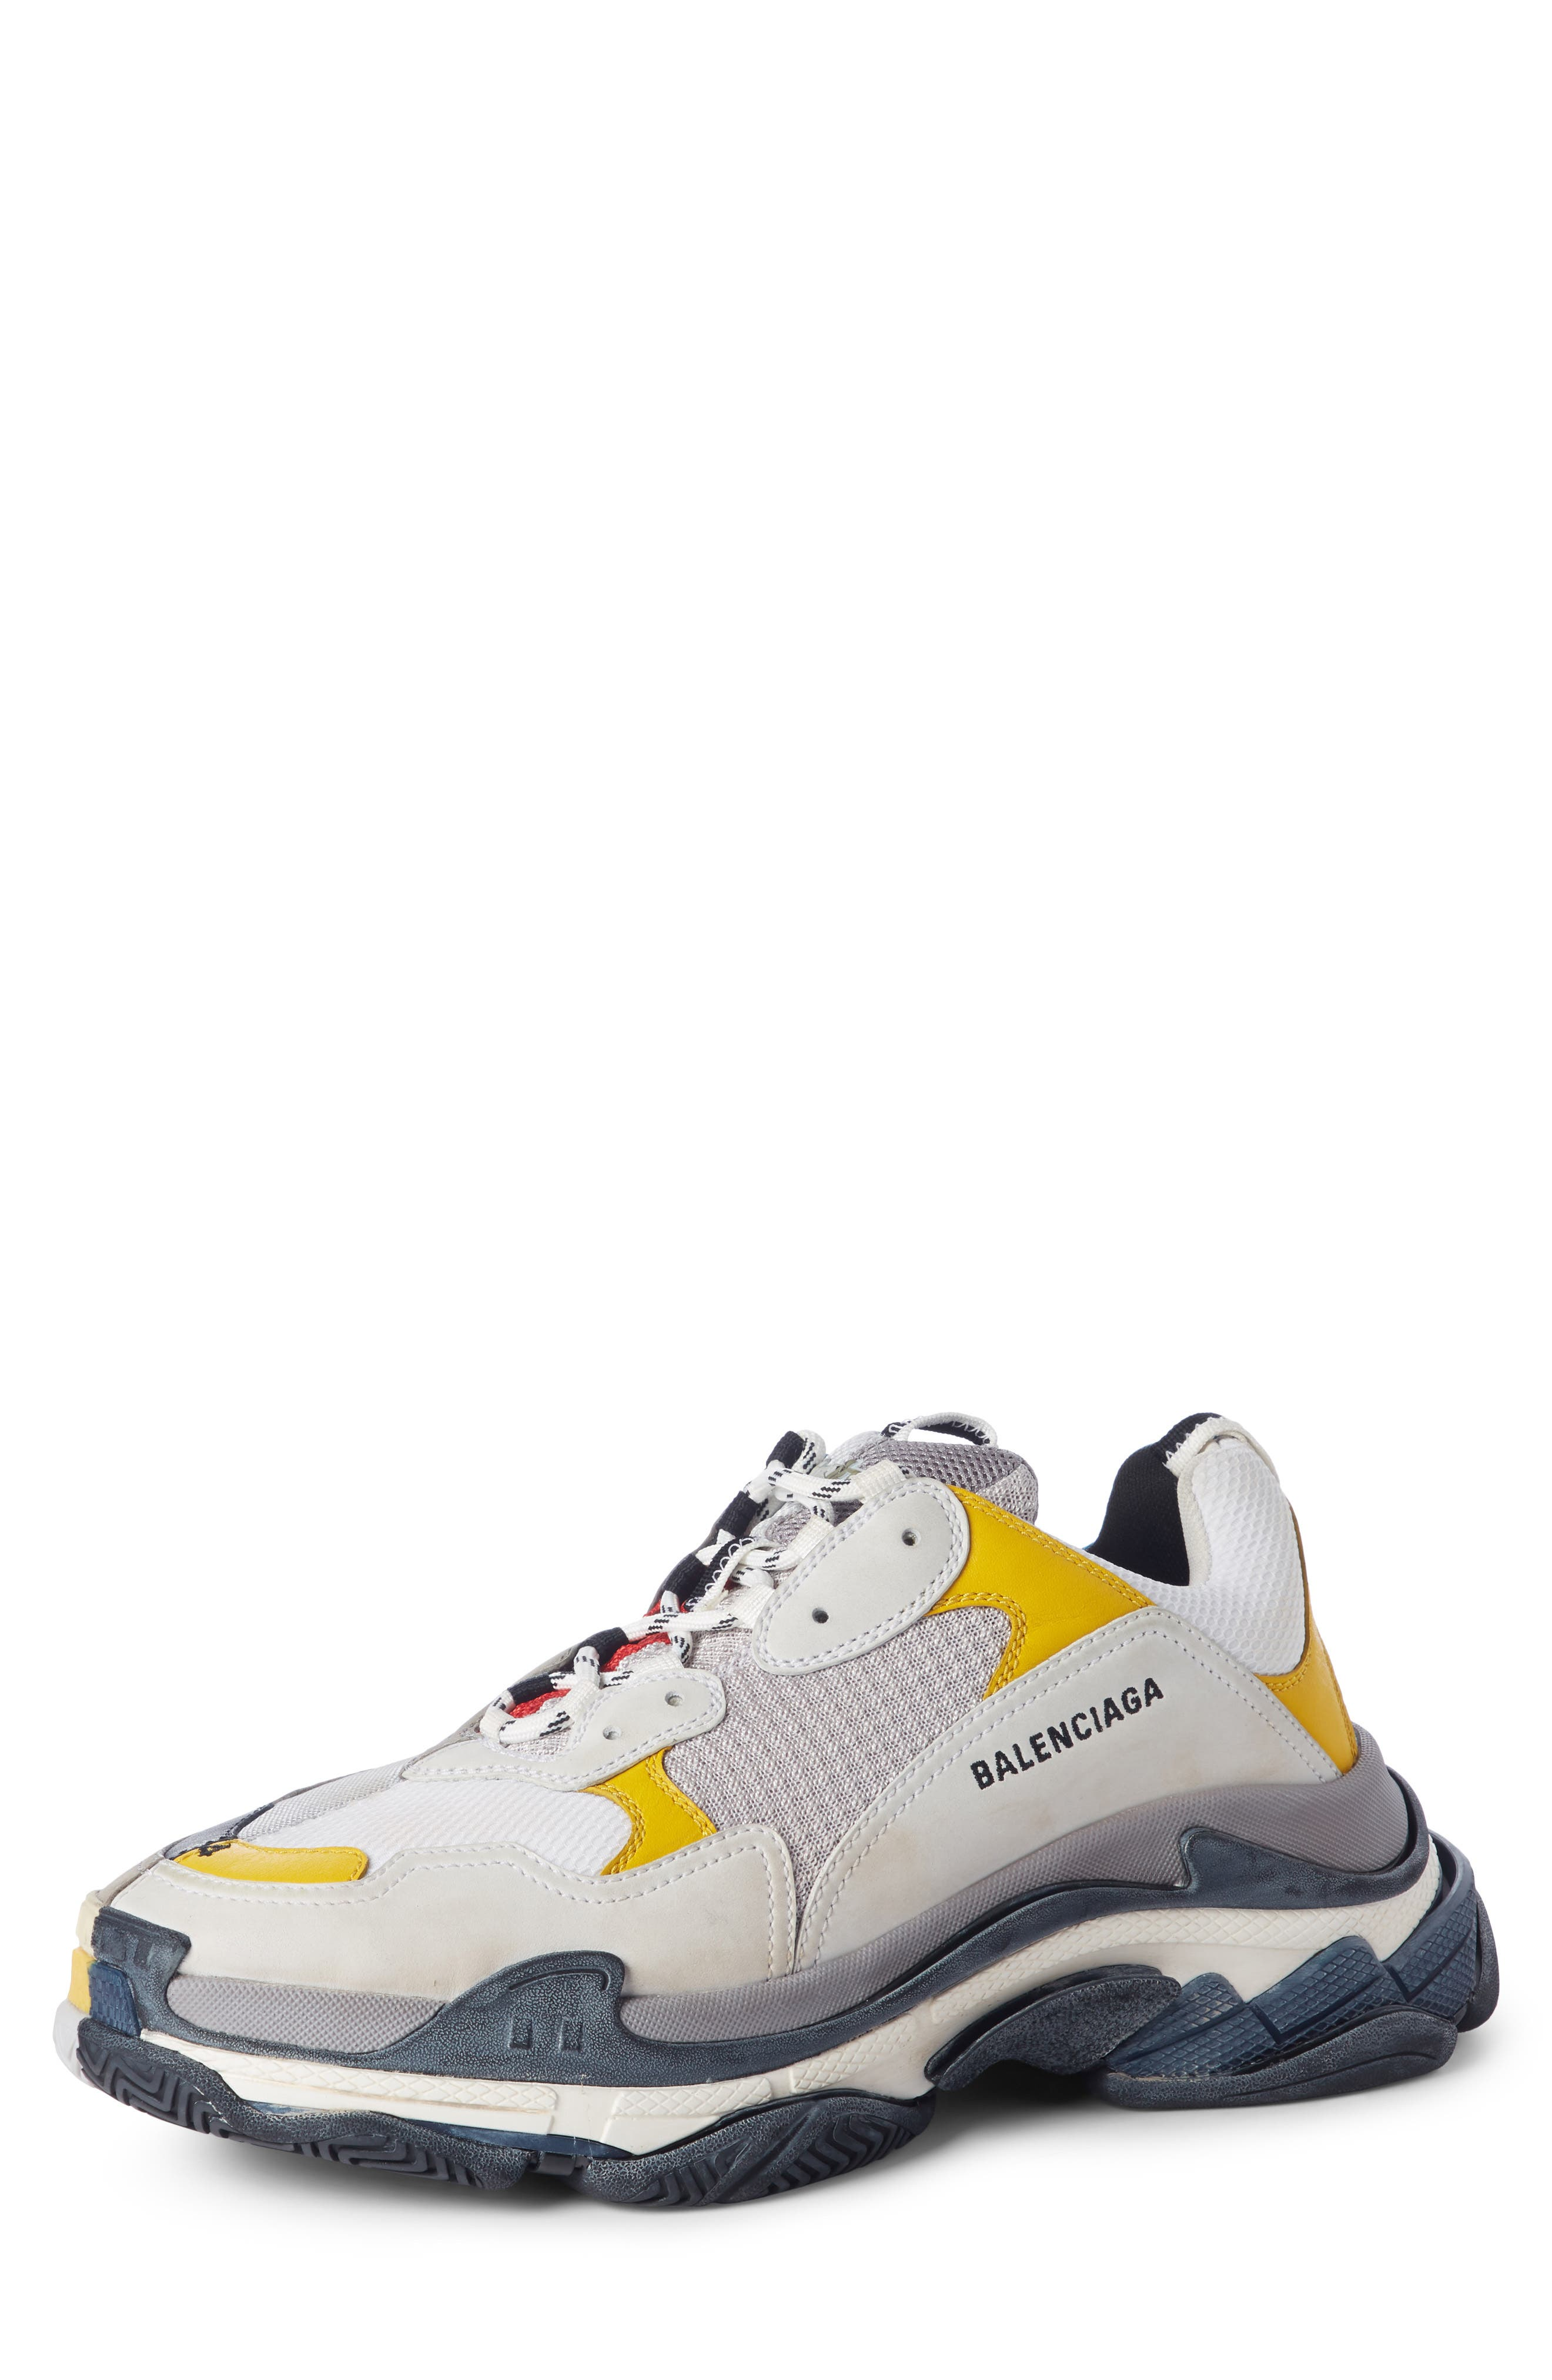 Triple-S Split Sneaker,                             Main thumbnail 1, color,                             BEIGE/ ROUGE